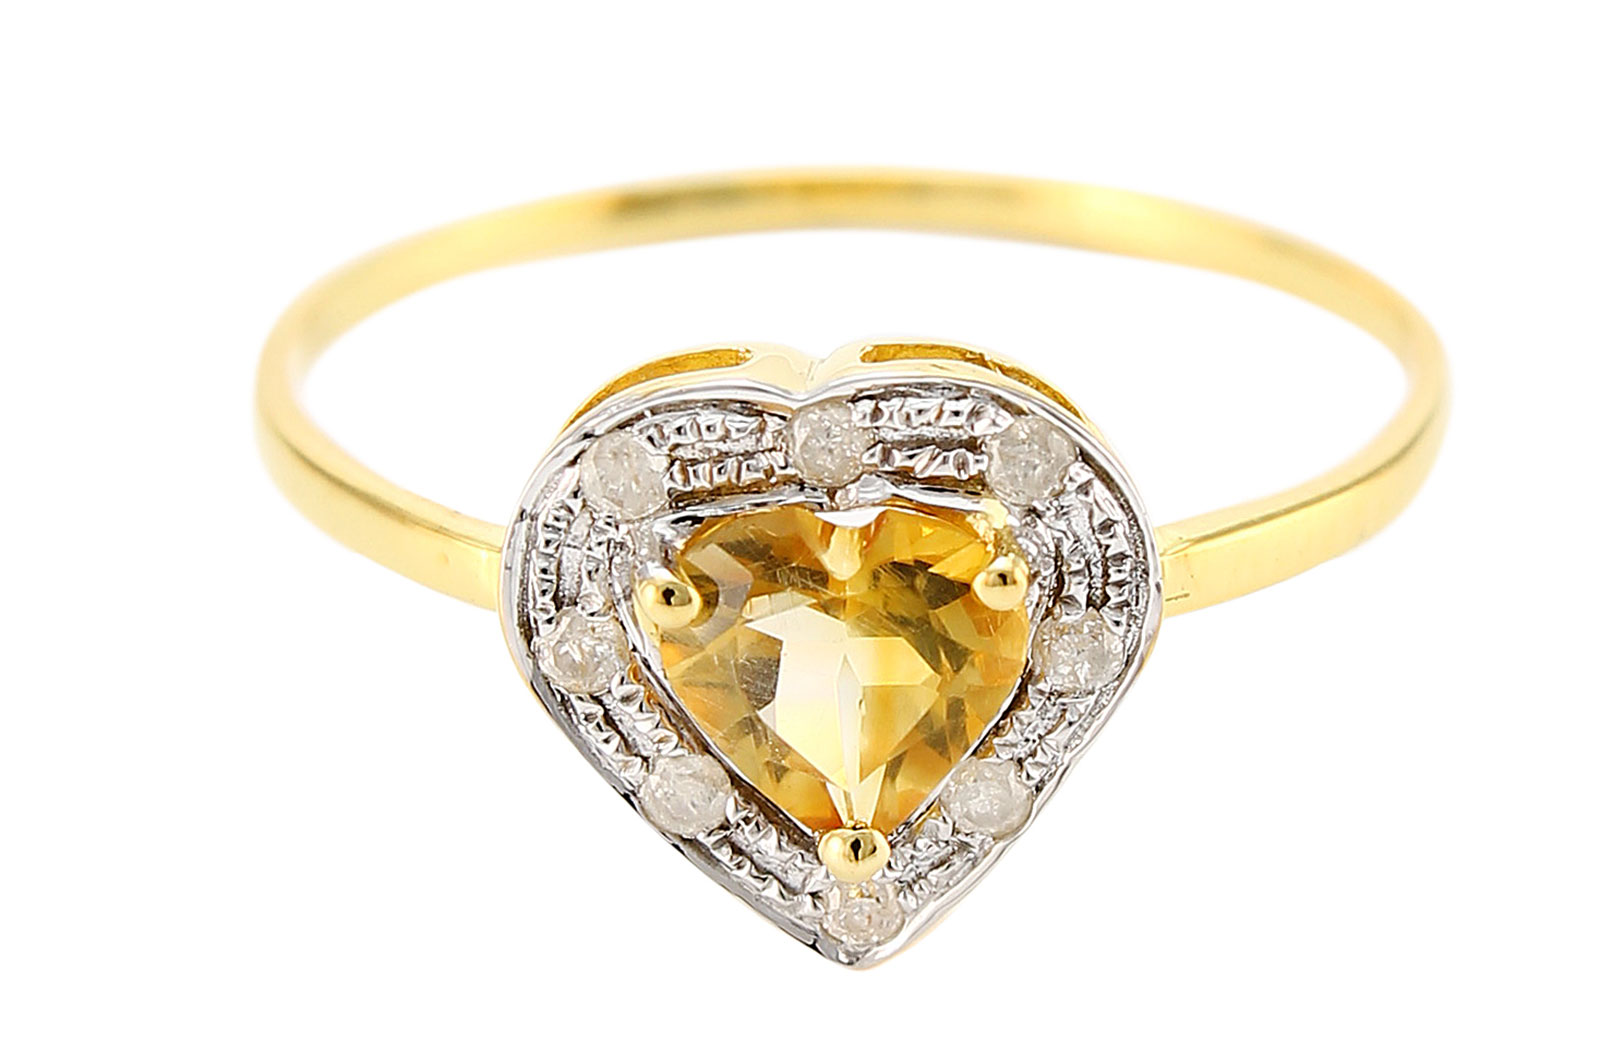 VP Jewels 18K Solid Yellow Gold 0.6CT Genuine Heart Cut Citrine 0.08ct Genuine Diamonds Ring - 6.5 US